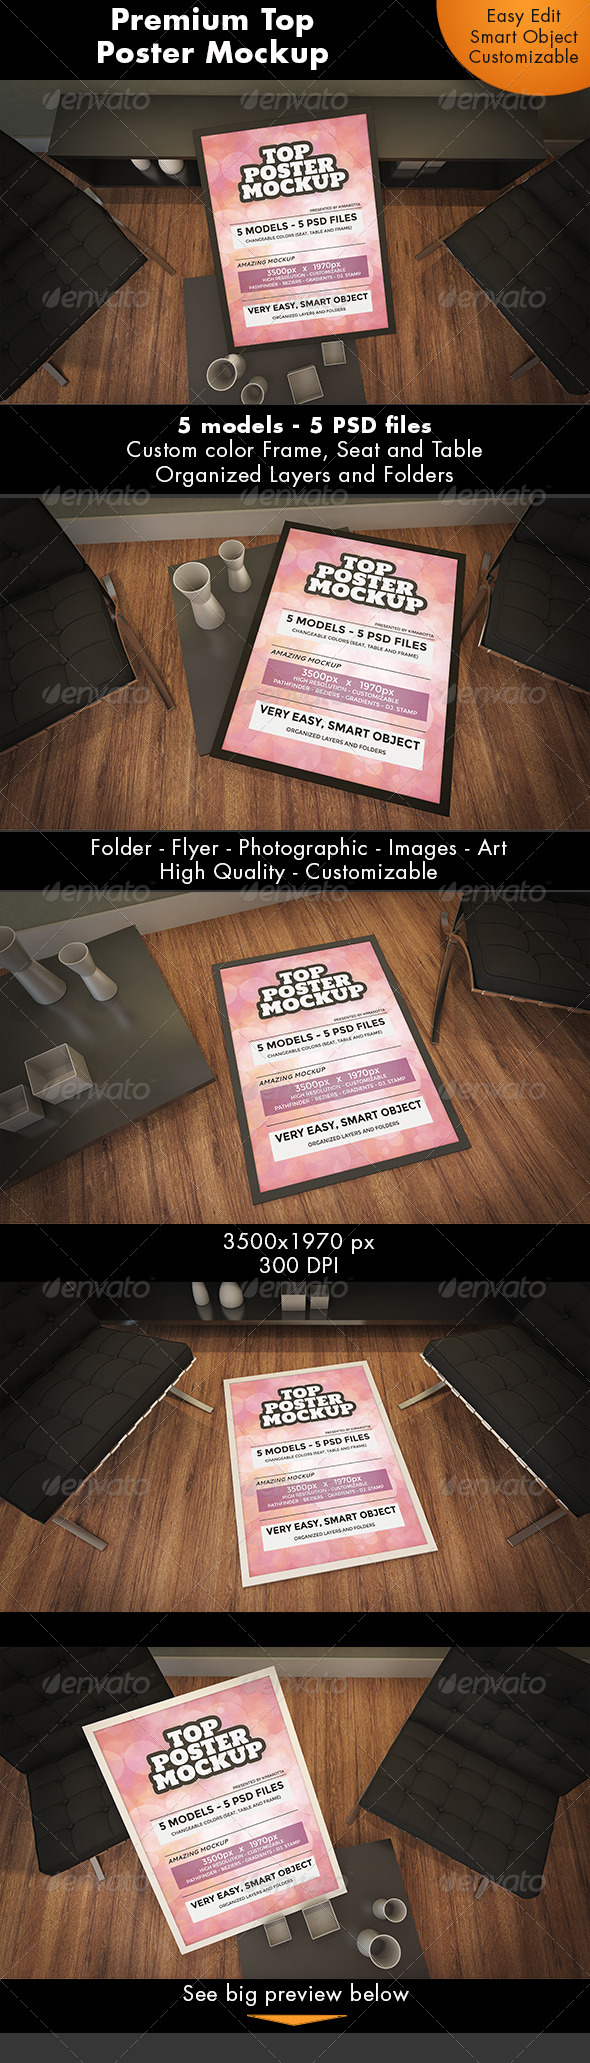 GraphicRiver Top Poster Mockup 7223304